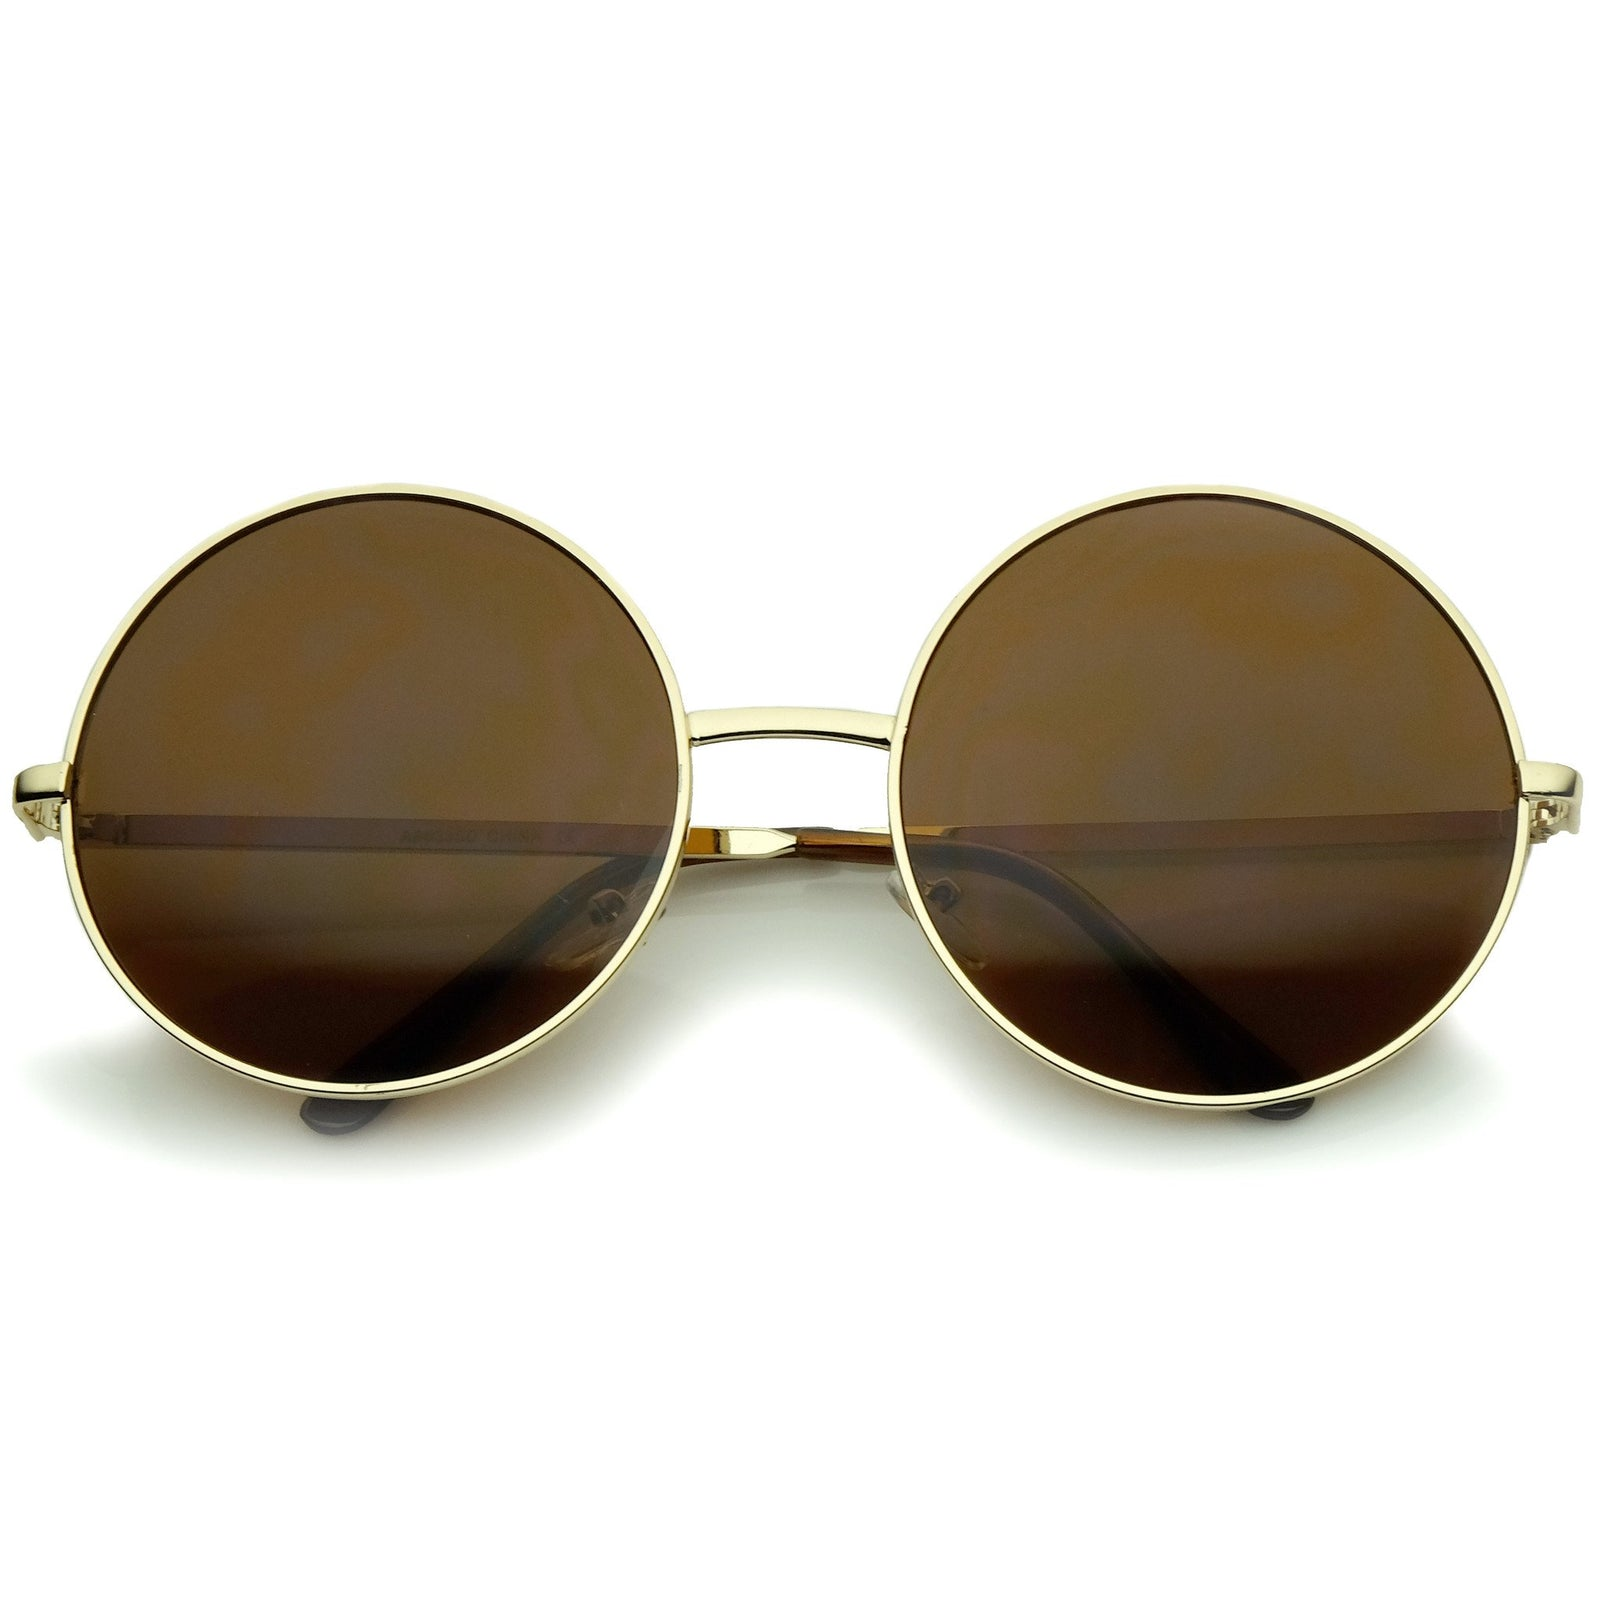 404b2c87749 Oversize Vintage Inspired Metal Round Circle Sunglasses 8370